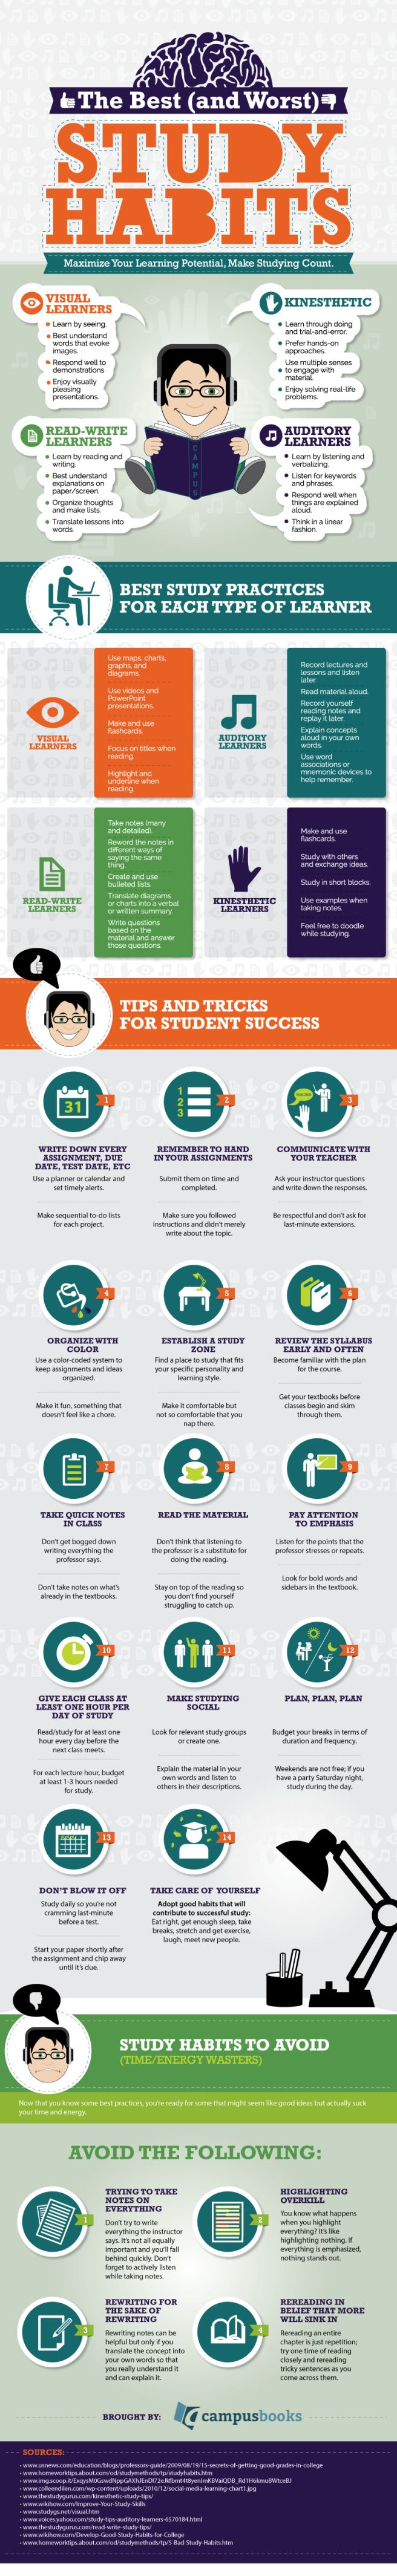 Proven Study Hacks to Help You Make The Grade [Infographic]